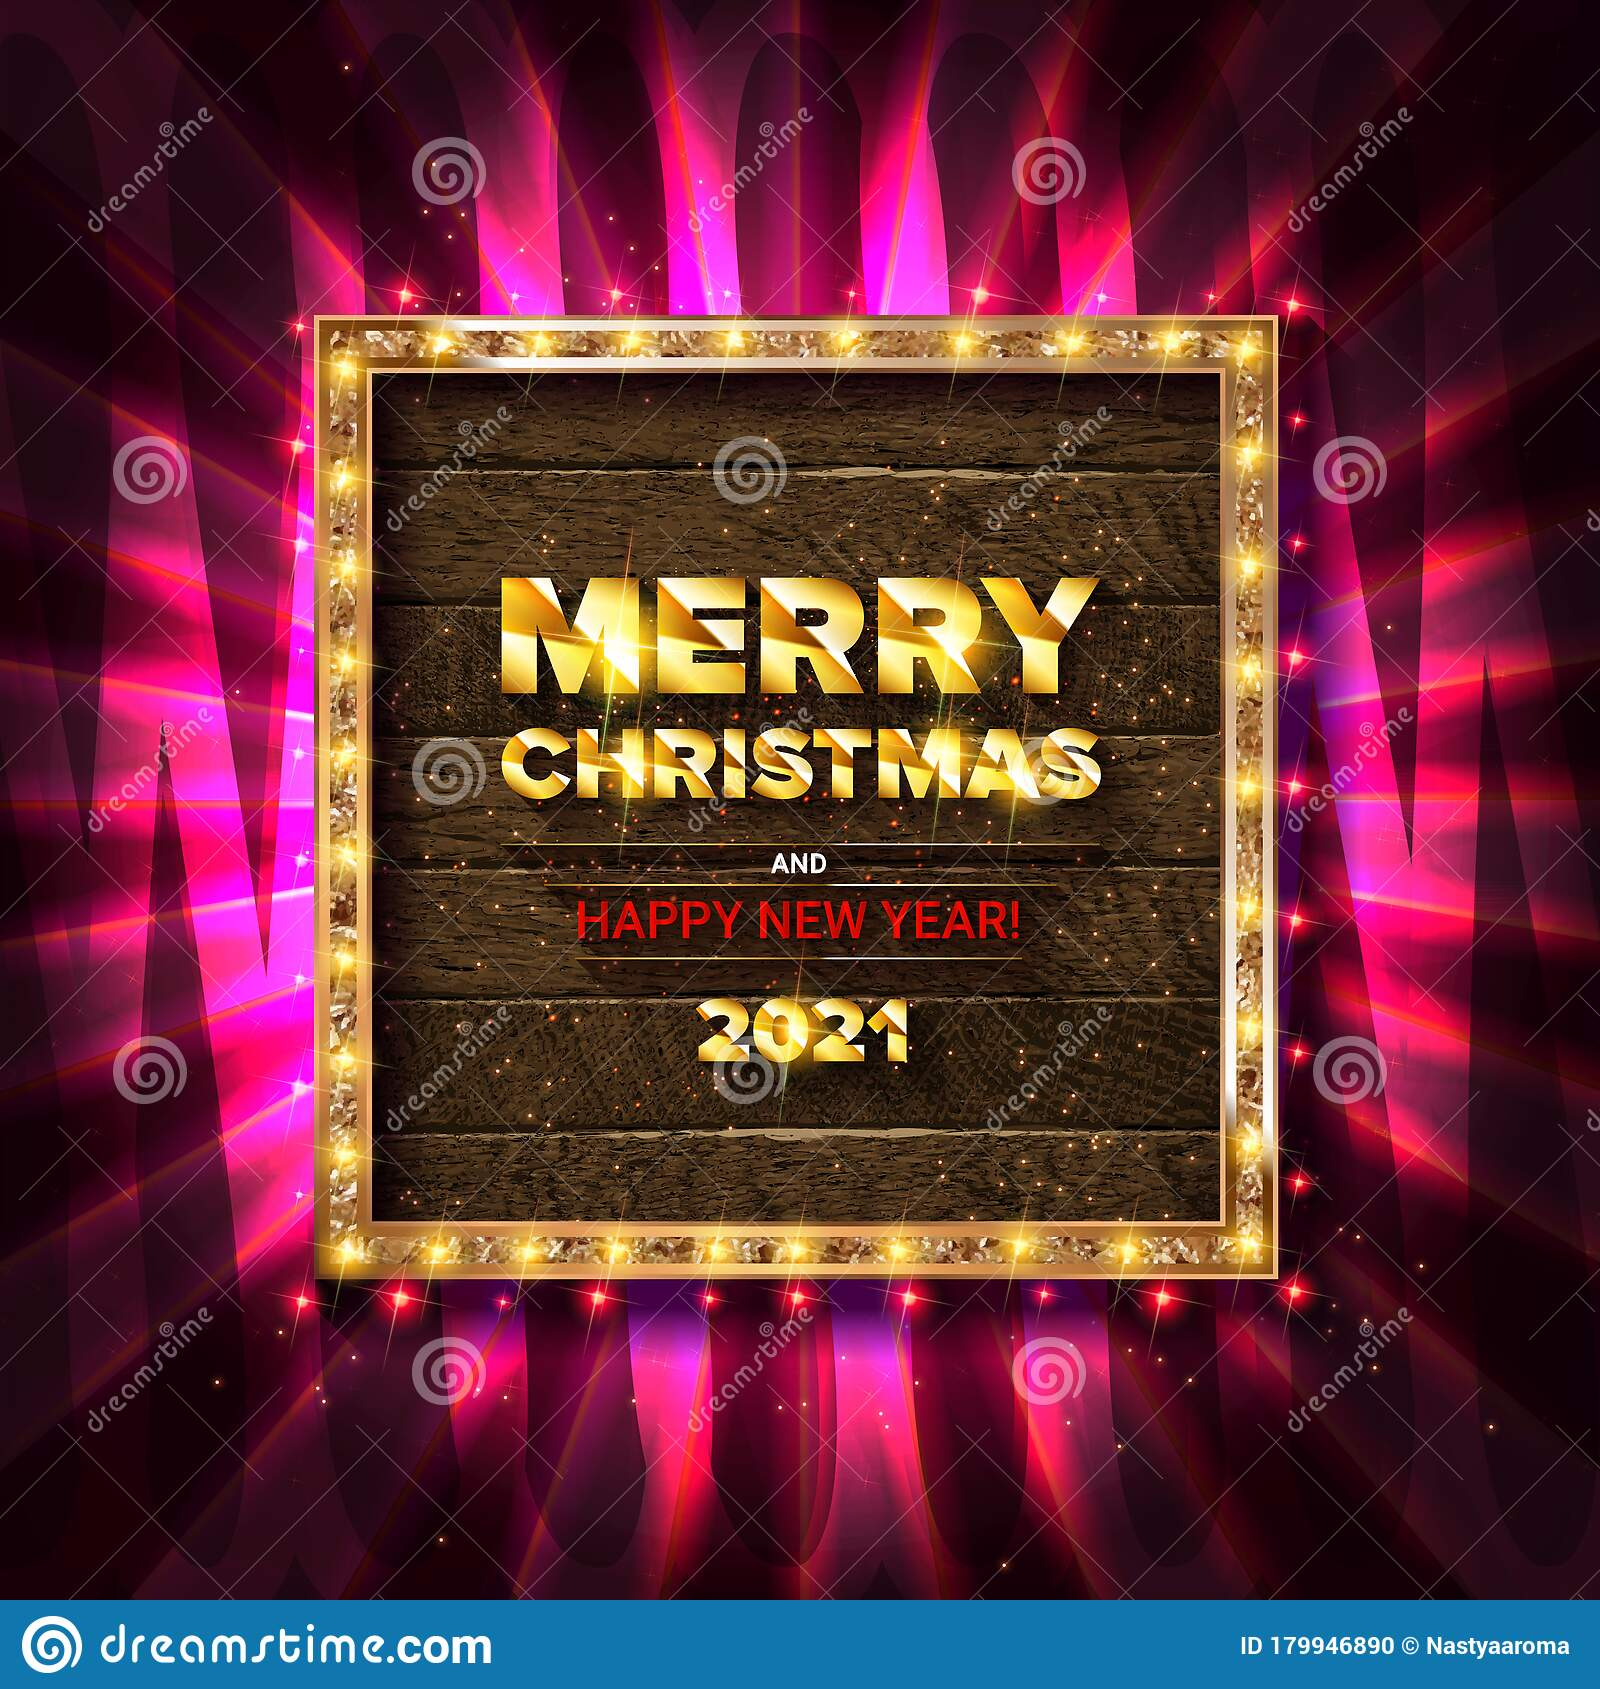 11++ Merry Christmas And Happy New Year 2021